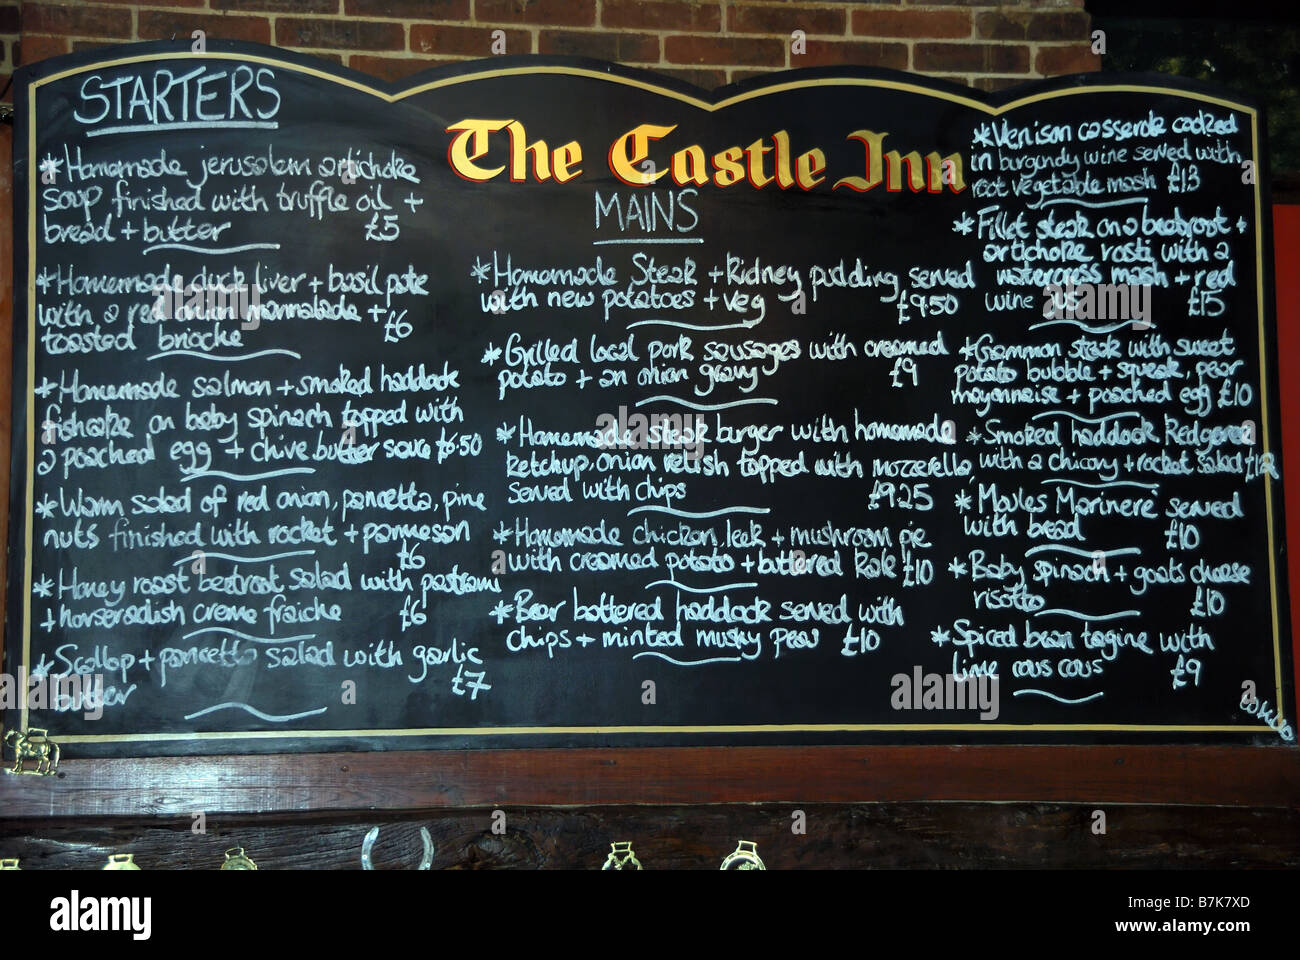 Menu Board in an East Sussex Pub - Stock Image